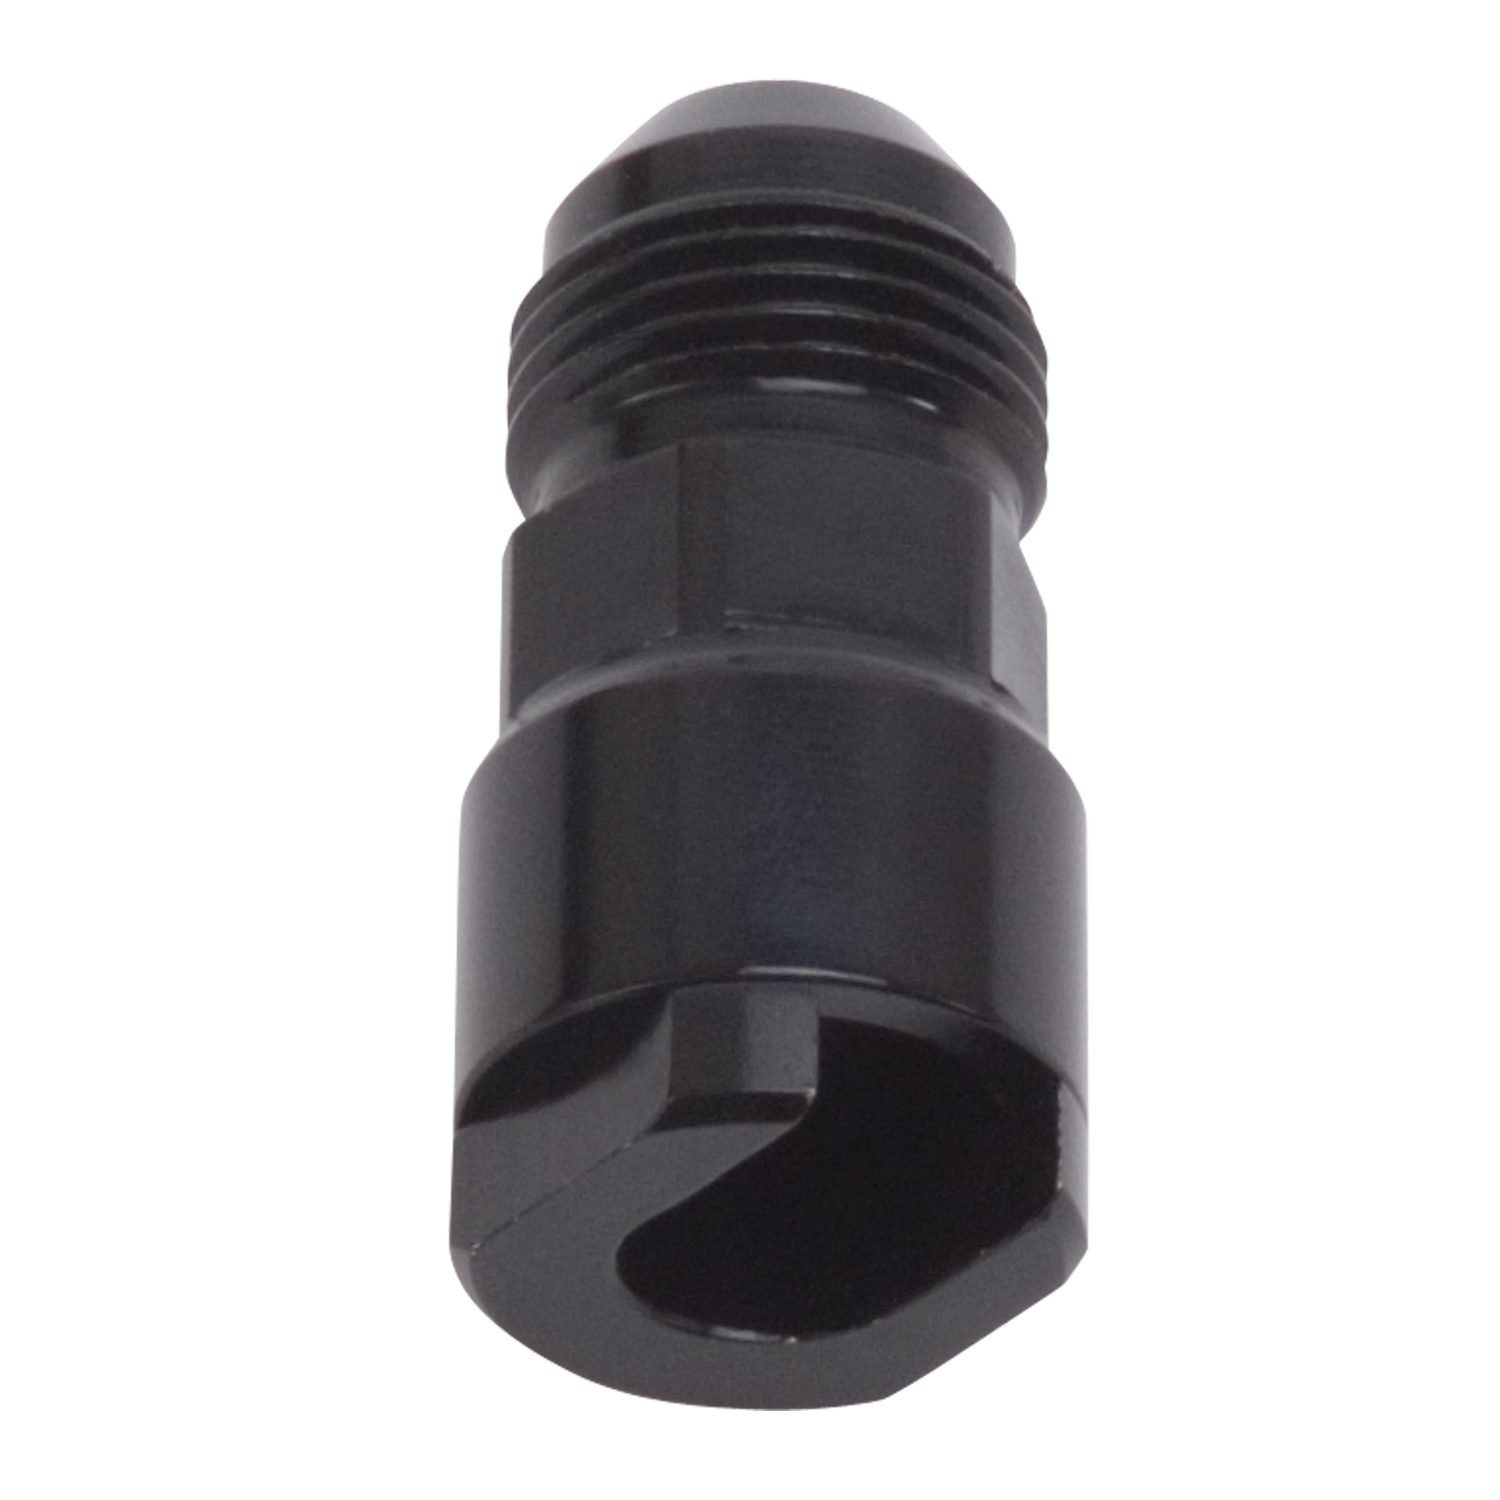 Russell 644133 Specialty Adapter Fitting at Sears.com